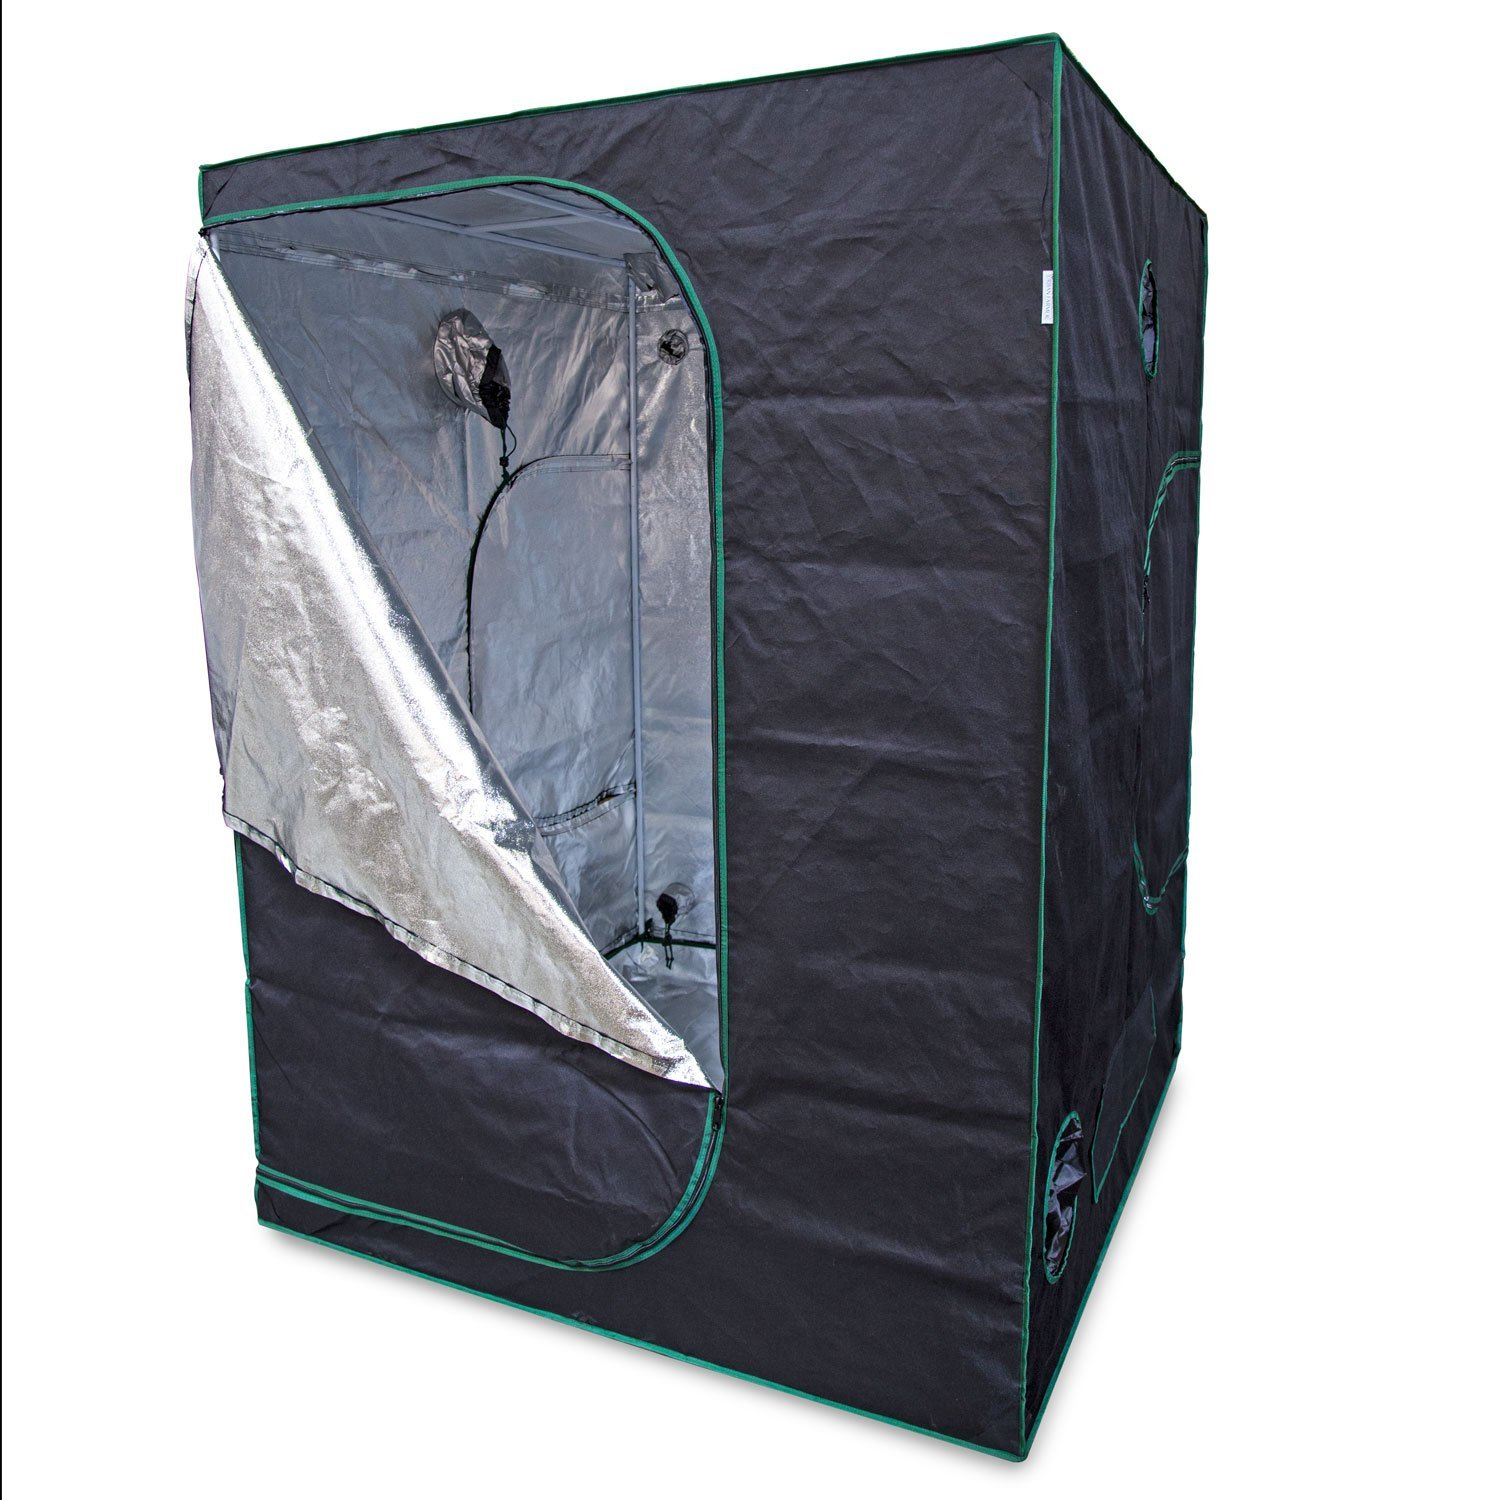 Urban Farmer 57x57x78 Reflective Mylar Hydroponic Grow Tent for Indoor Plant Growing